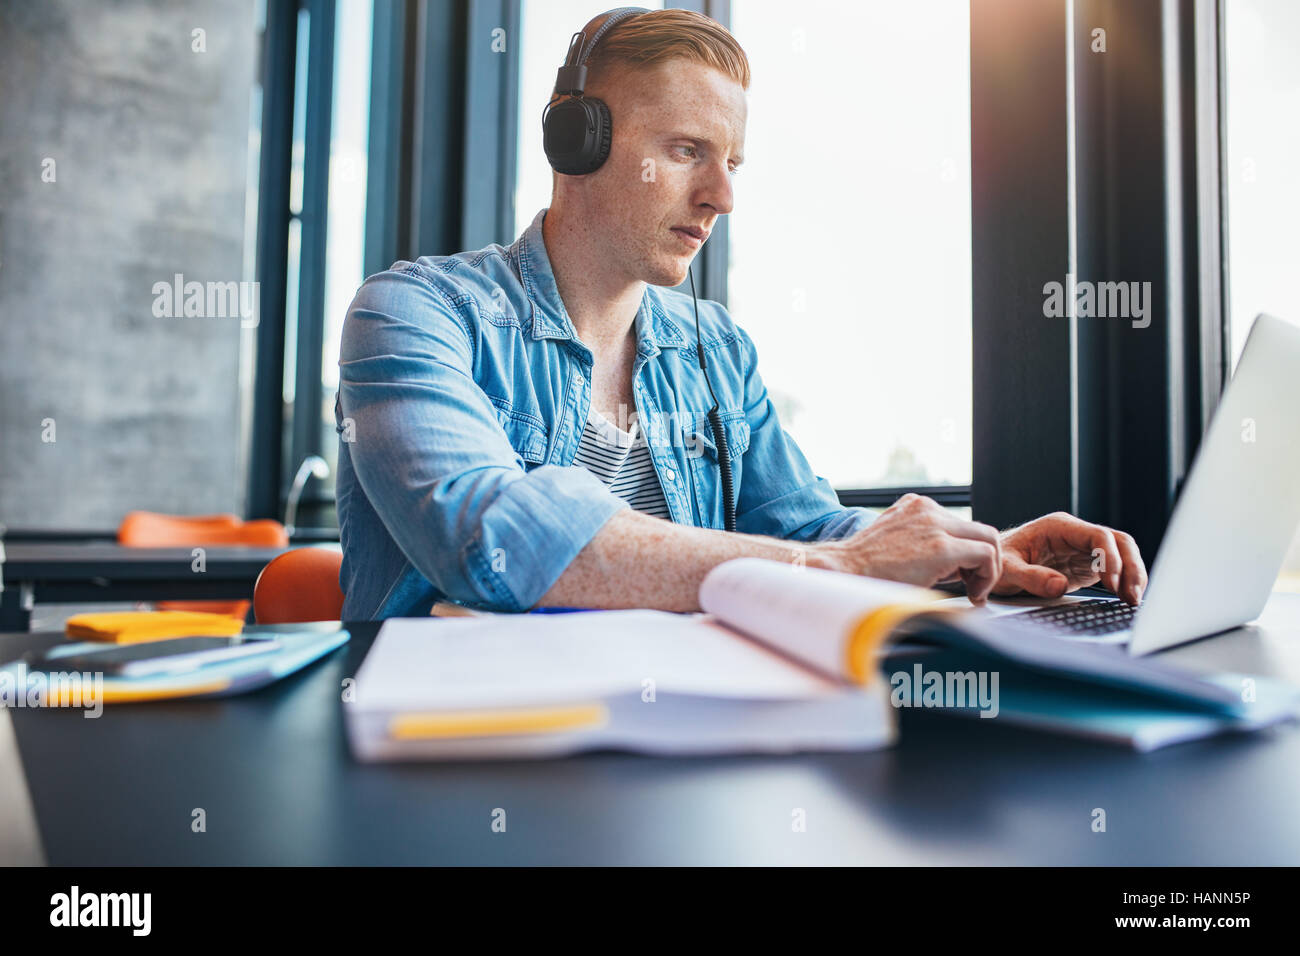 Shot of young caucasian man with headphones studying in library à l'aide d'ordinateur portable. Étudiant de l'université Banque D'Images